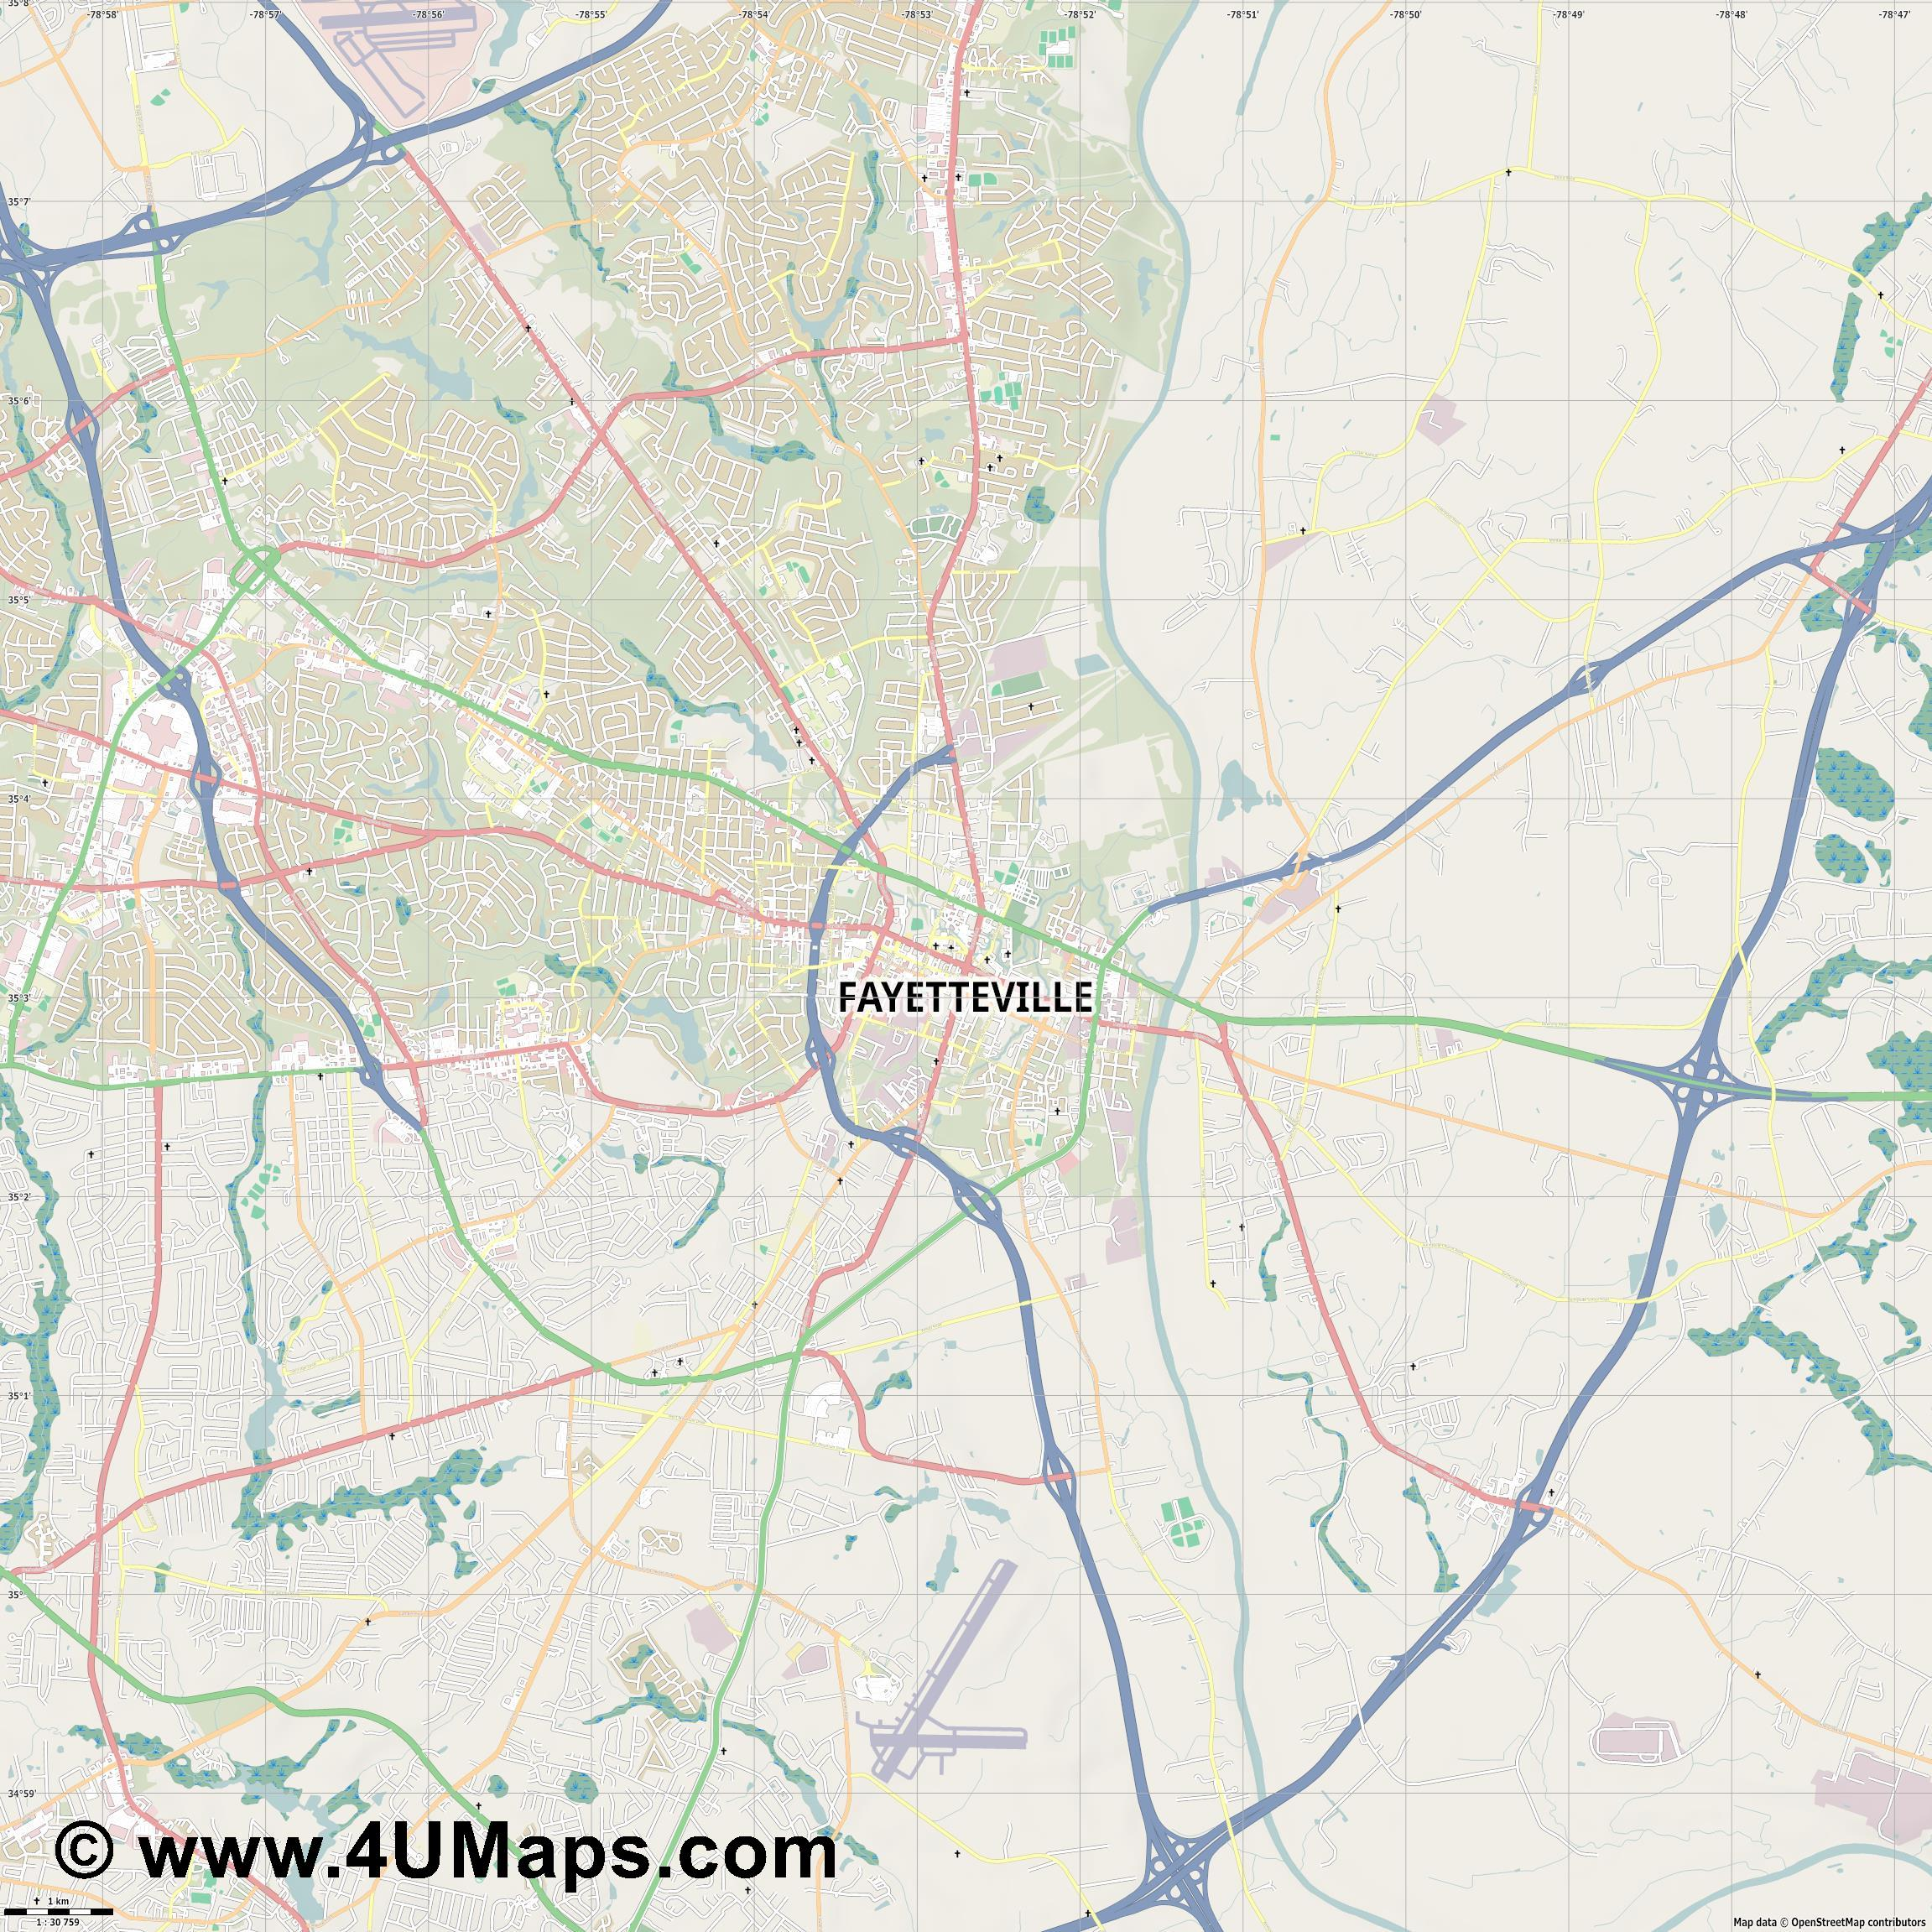 Fayetteville  jpg high detail, large area preview vector city map